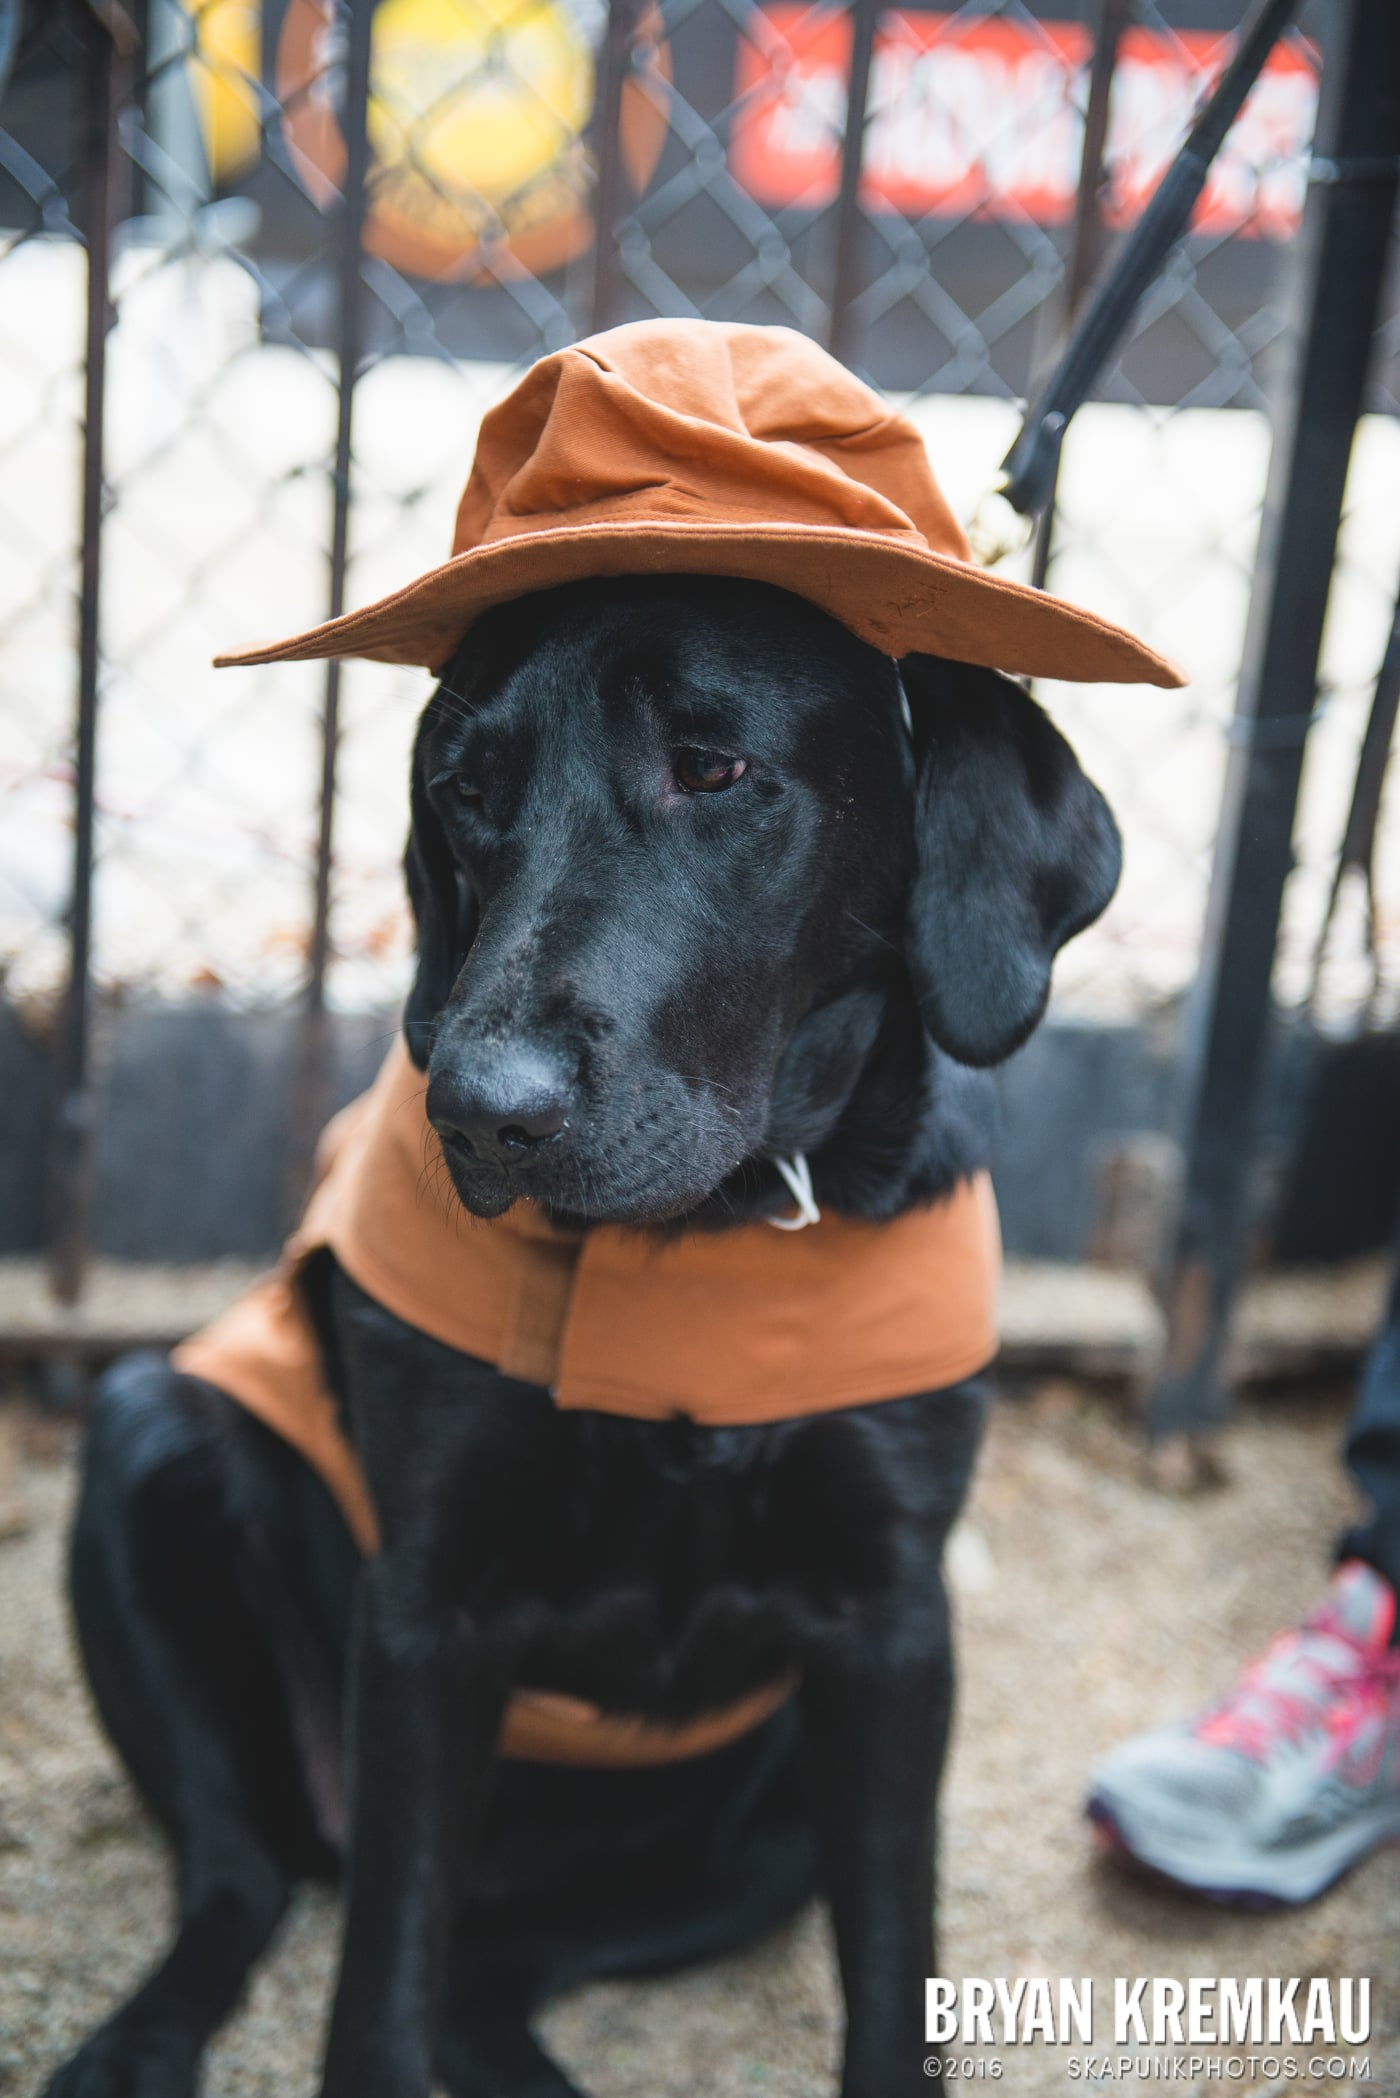 Tompkins Square Halloween Dog Parade 2015 @ Tompkins Square Park, NYC – 10.24.15 (53)